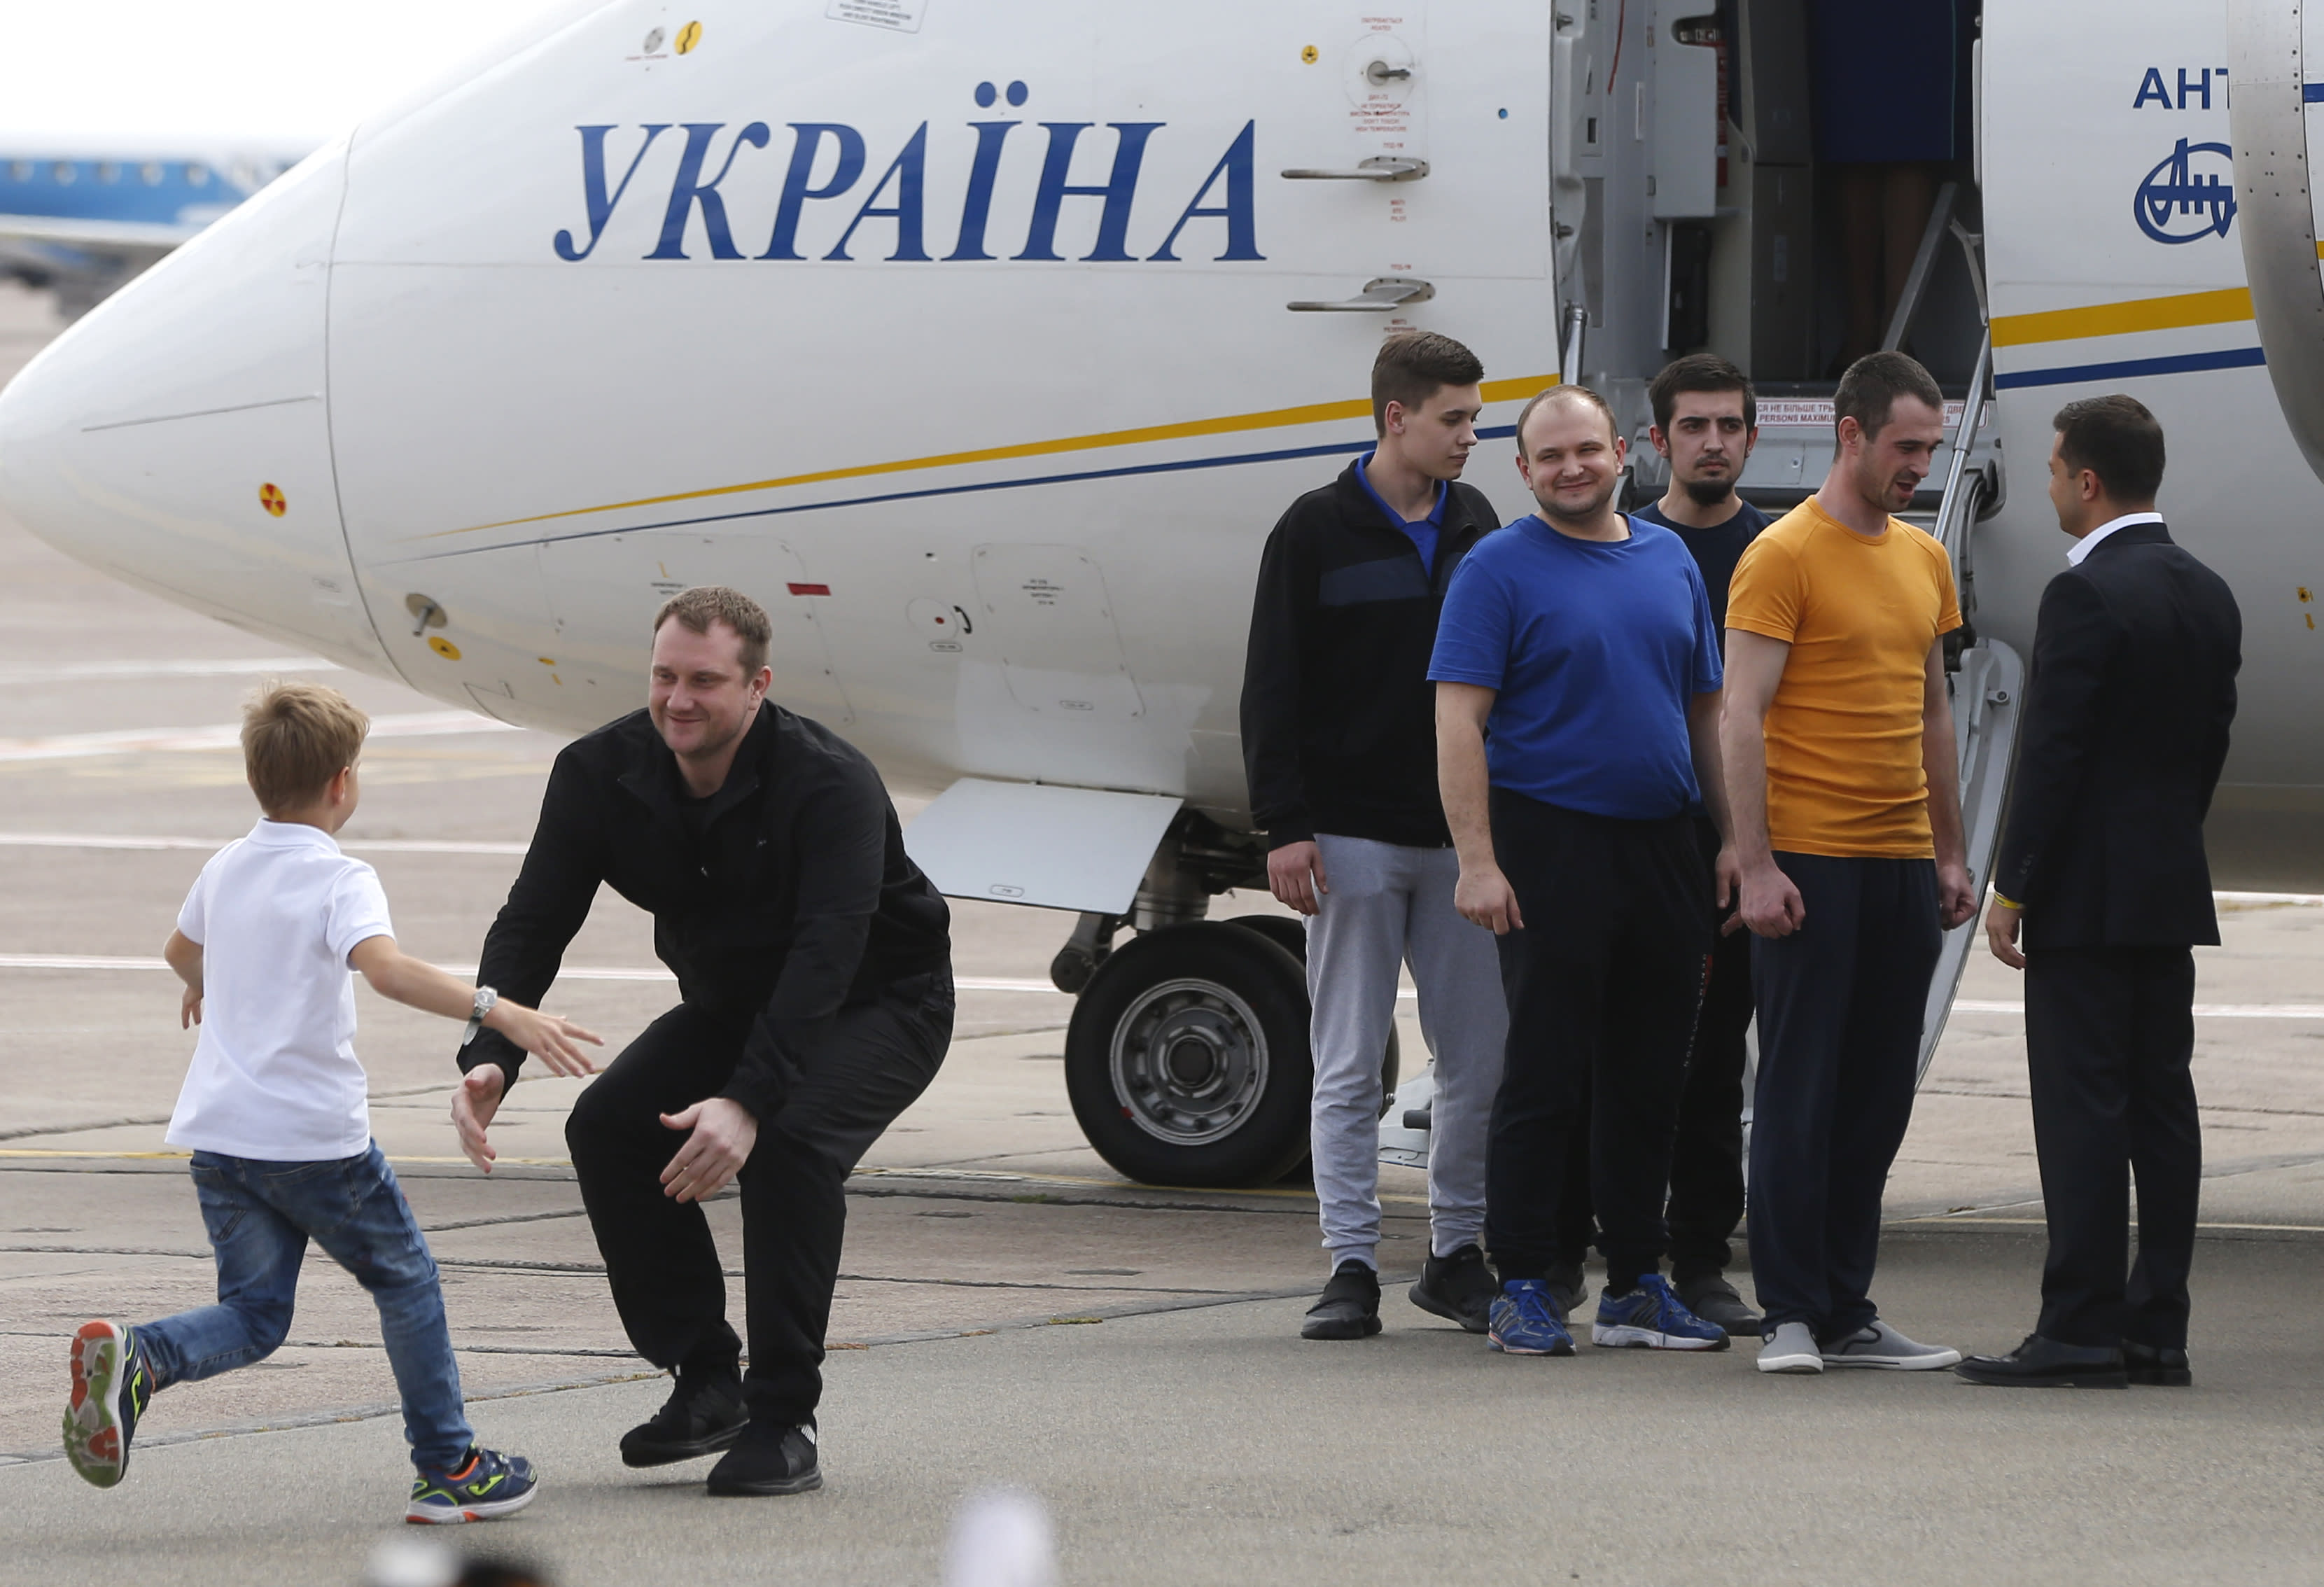 Ukraine's President Volodymyr Zelenskiy, right, greets Ukrainian prisoners upon their arrival at Boryspil airport, outside Kyiv, Ukraine, Saturday, Sept. 7, 2019. Planes carrying prisoners freed by Russia and Ukraine have landed in the countries' capitals, in an exchange that could be a significant step toward improving relations between Moscow and Kyiv. The planes, each reportedly carrying 35 prisoners, landed almost simultaneously at Vnukovo airport in Moscow and at Kyiv's Boryspil airport. (AP Photo/Efrem Lukatsky)